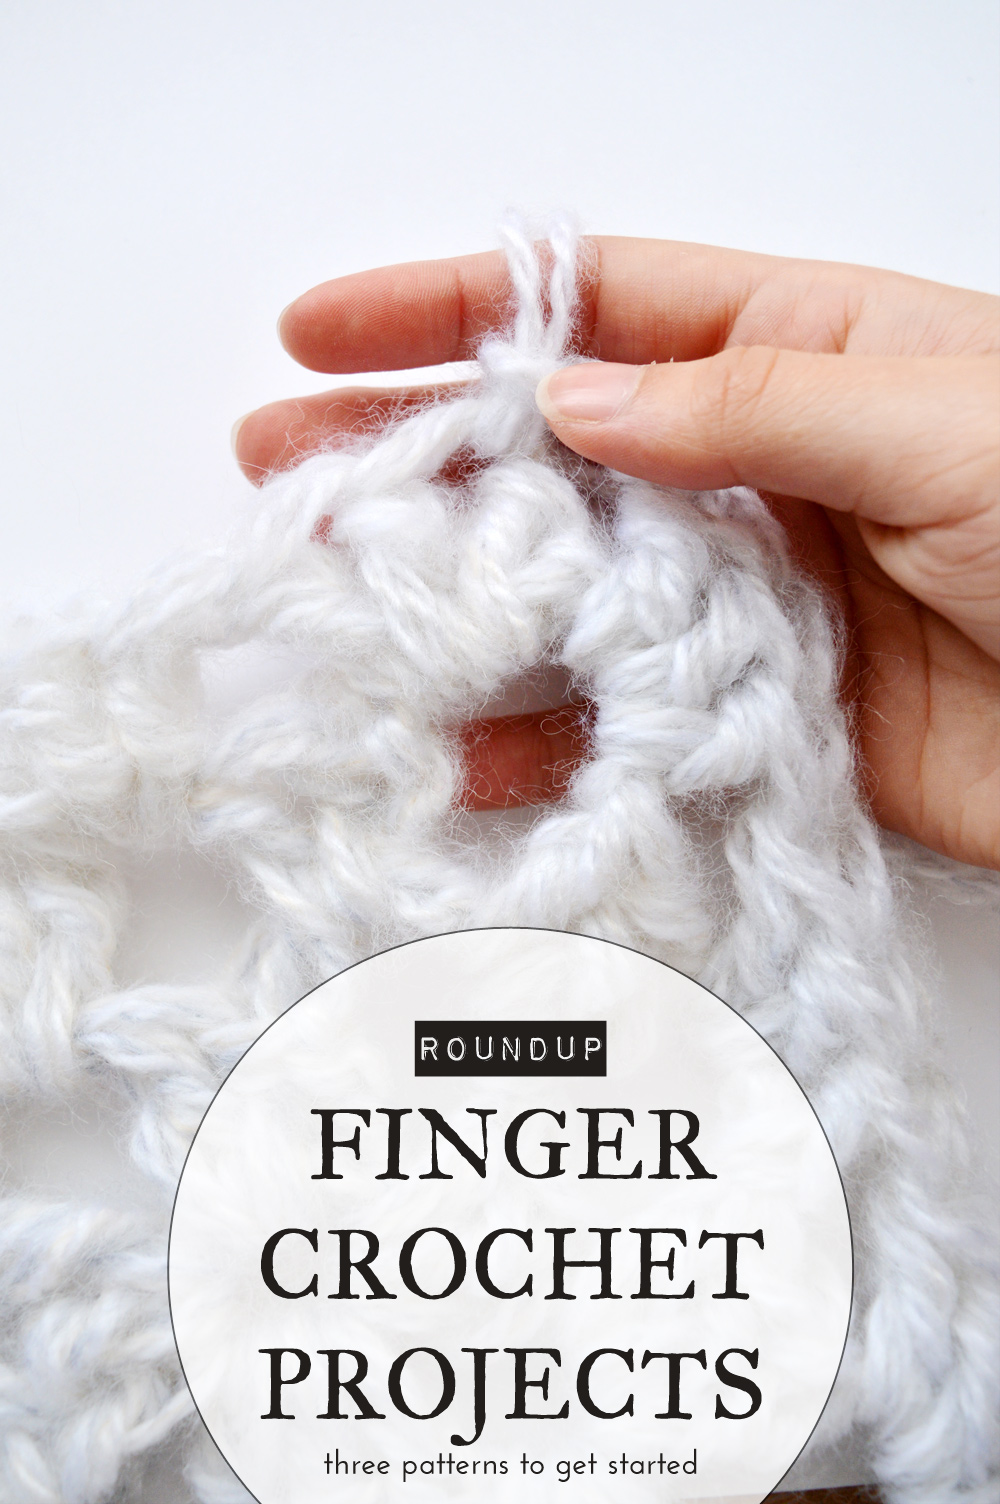 finger-crochet-projects-roundup-Crafting-Fingers.jpg